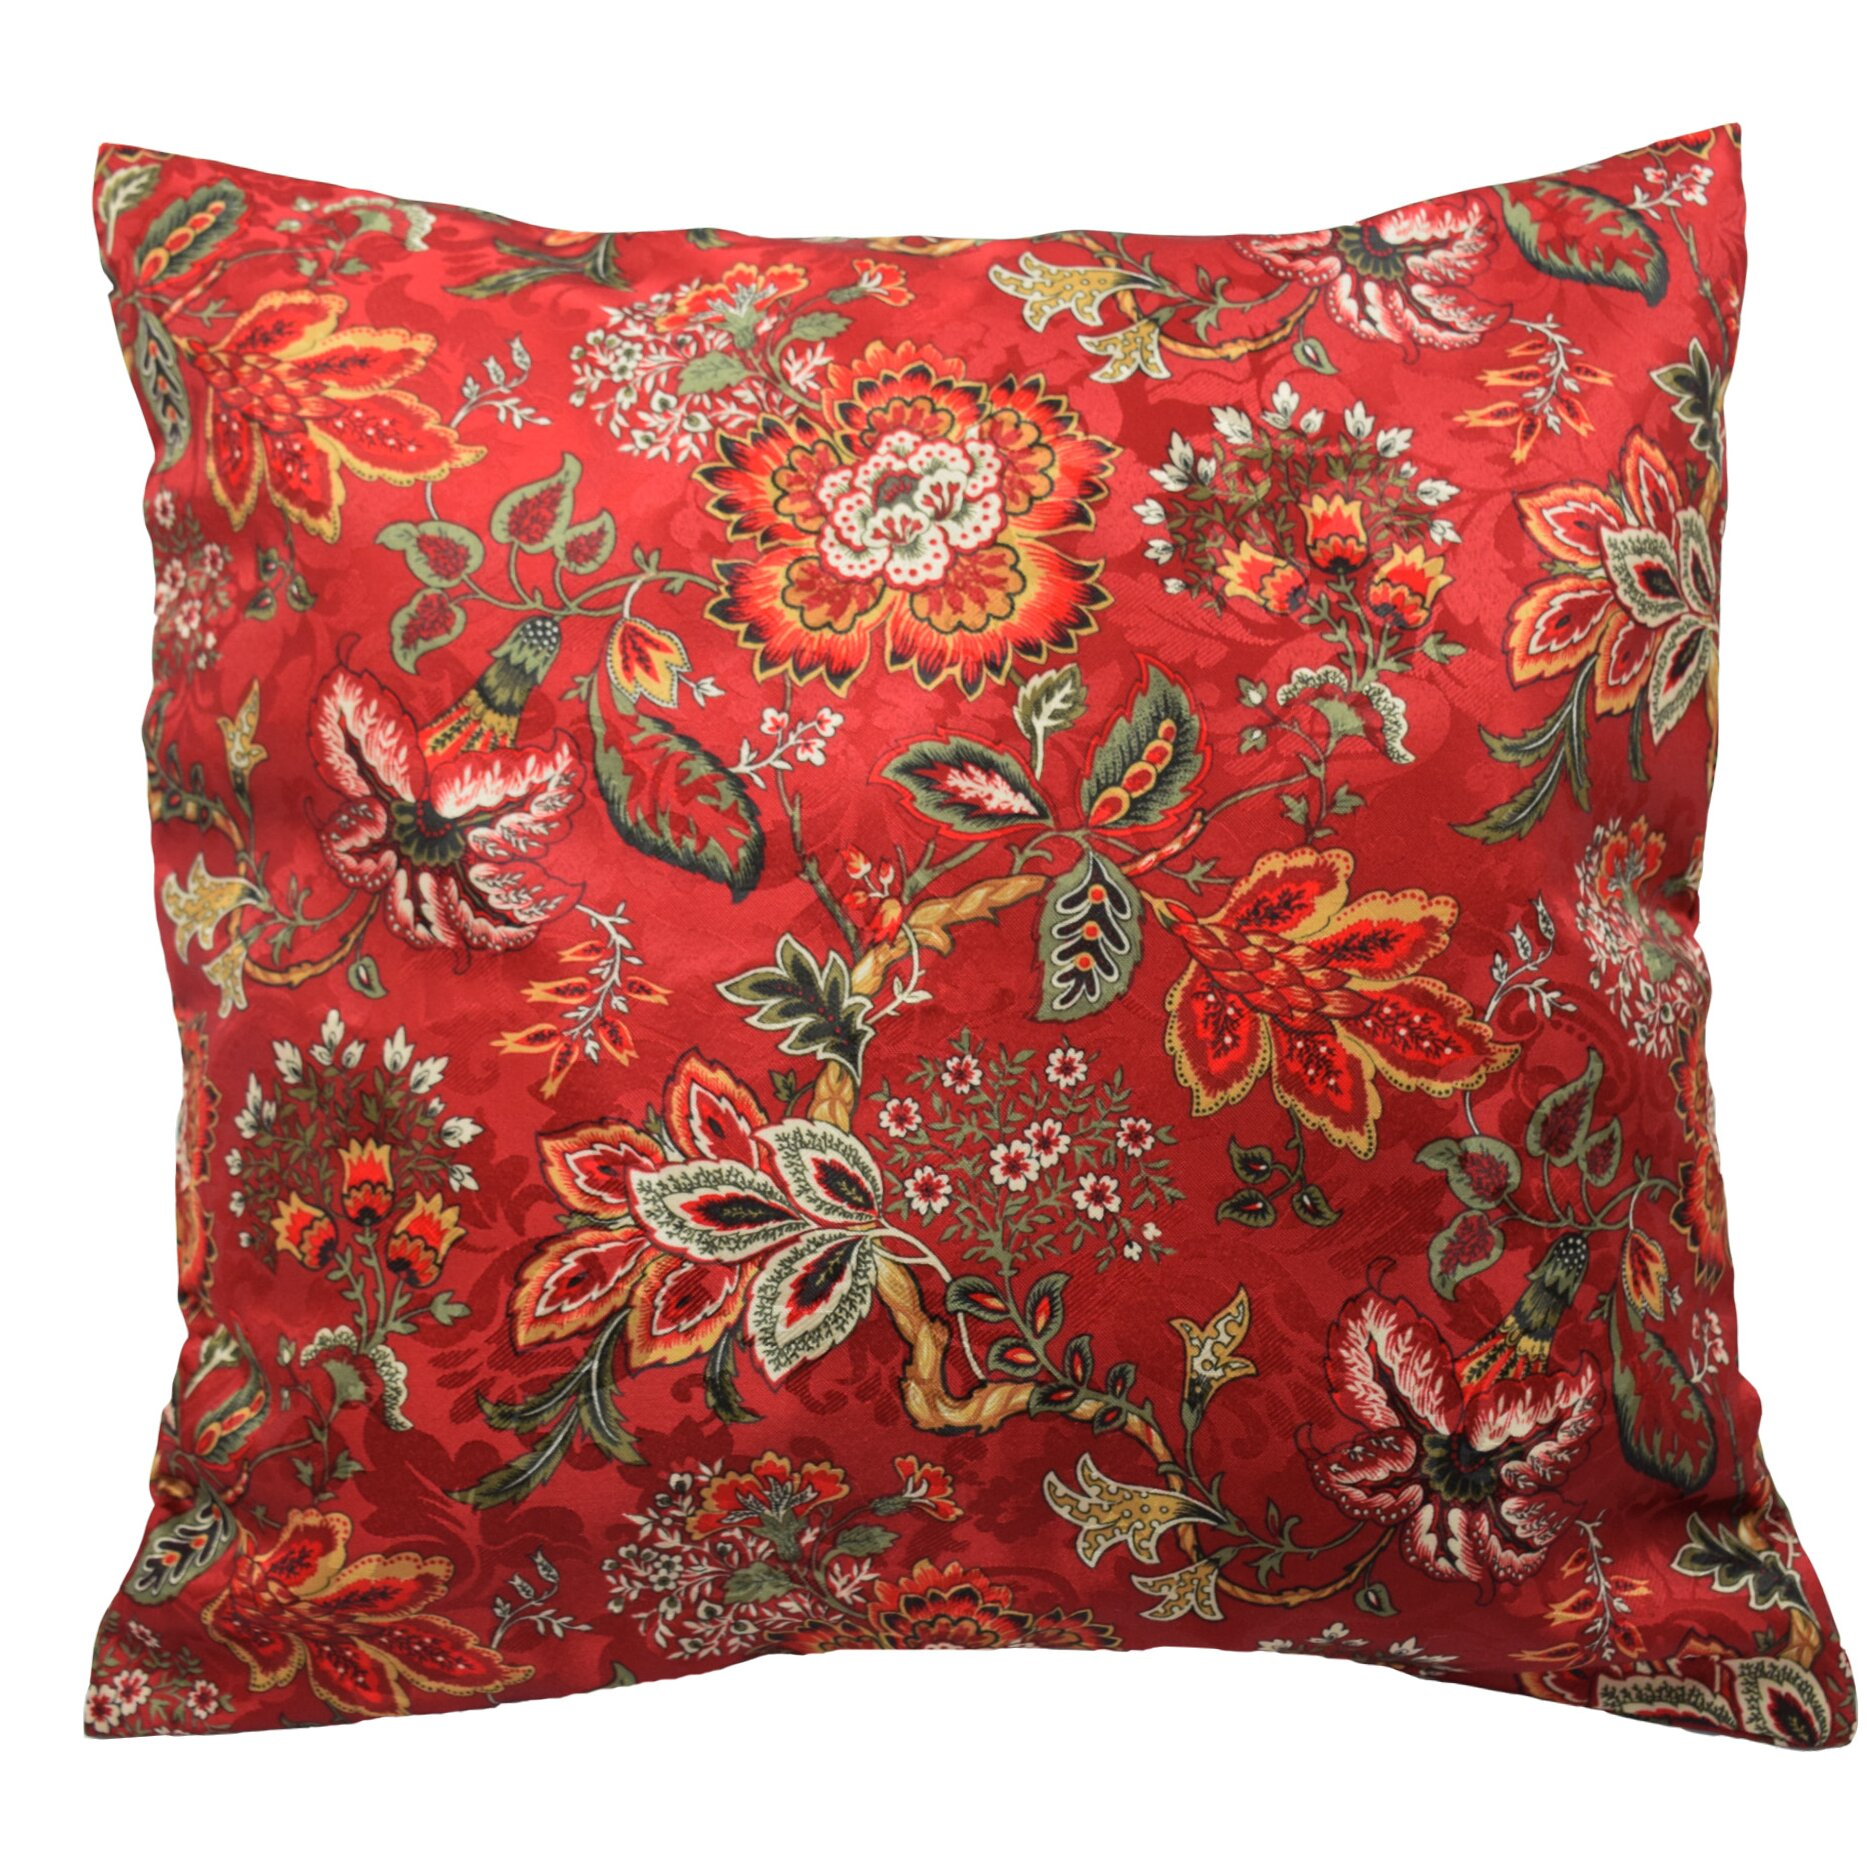 Decorative Pillow Wayfair : Traditions by Waverly Navarra Floral Decorative Throw Pillow & Reviews Wayfair